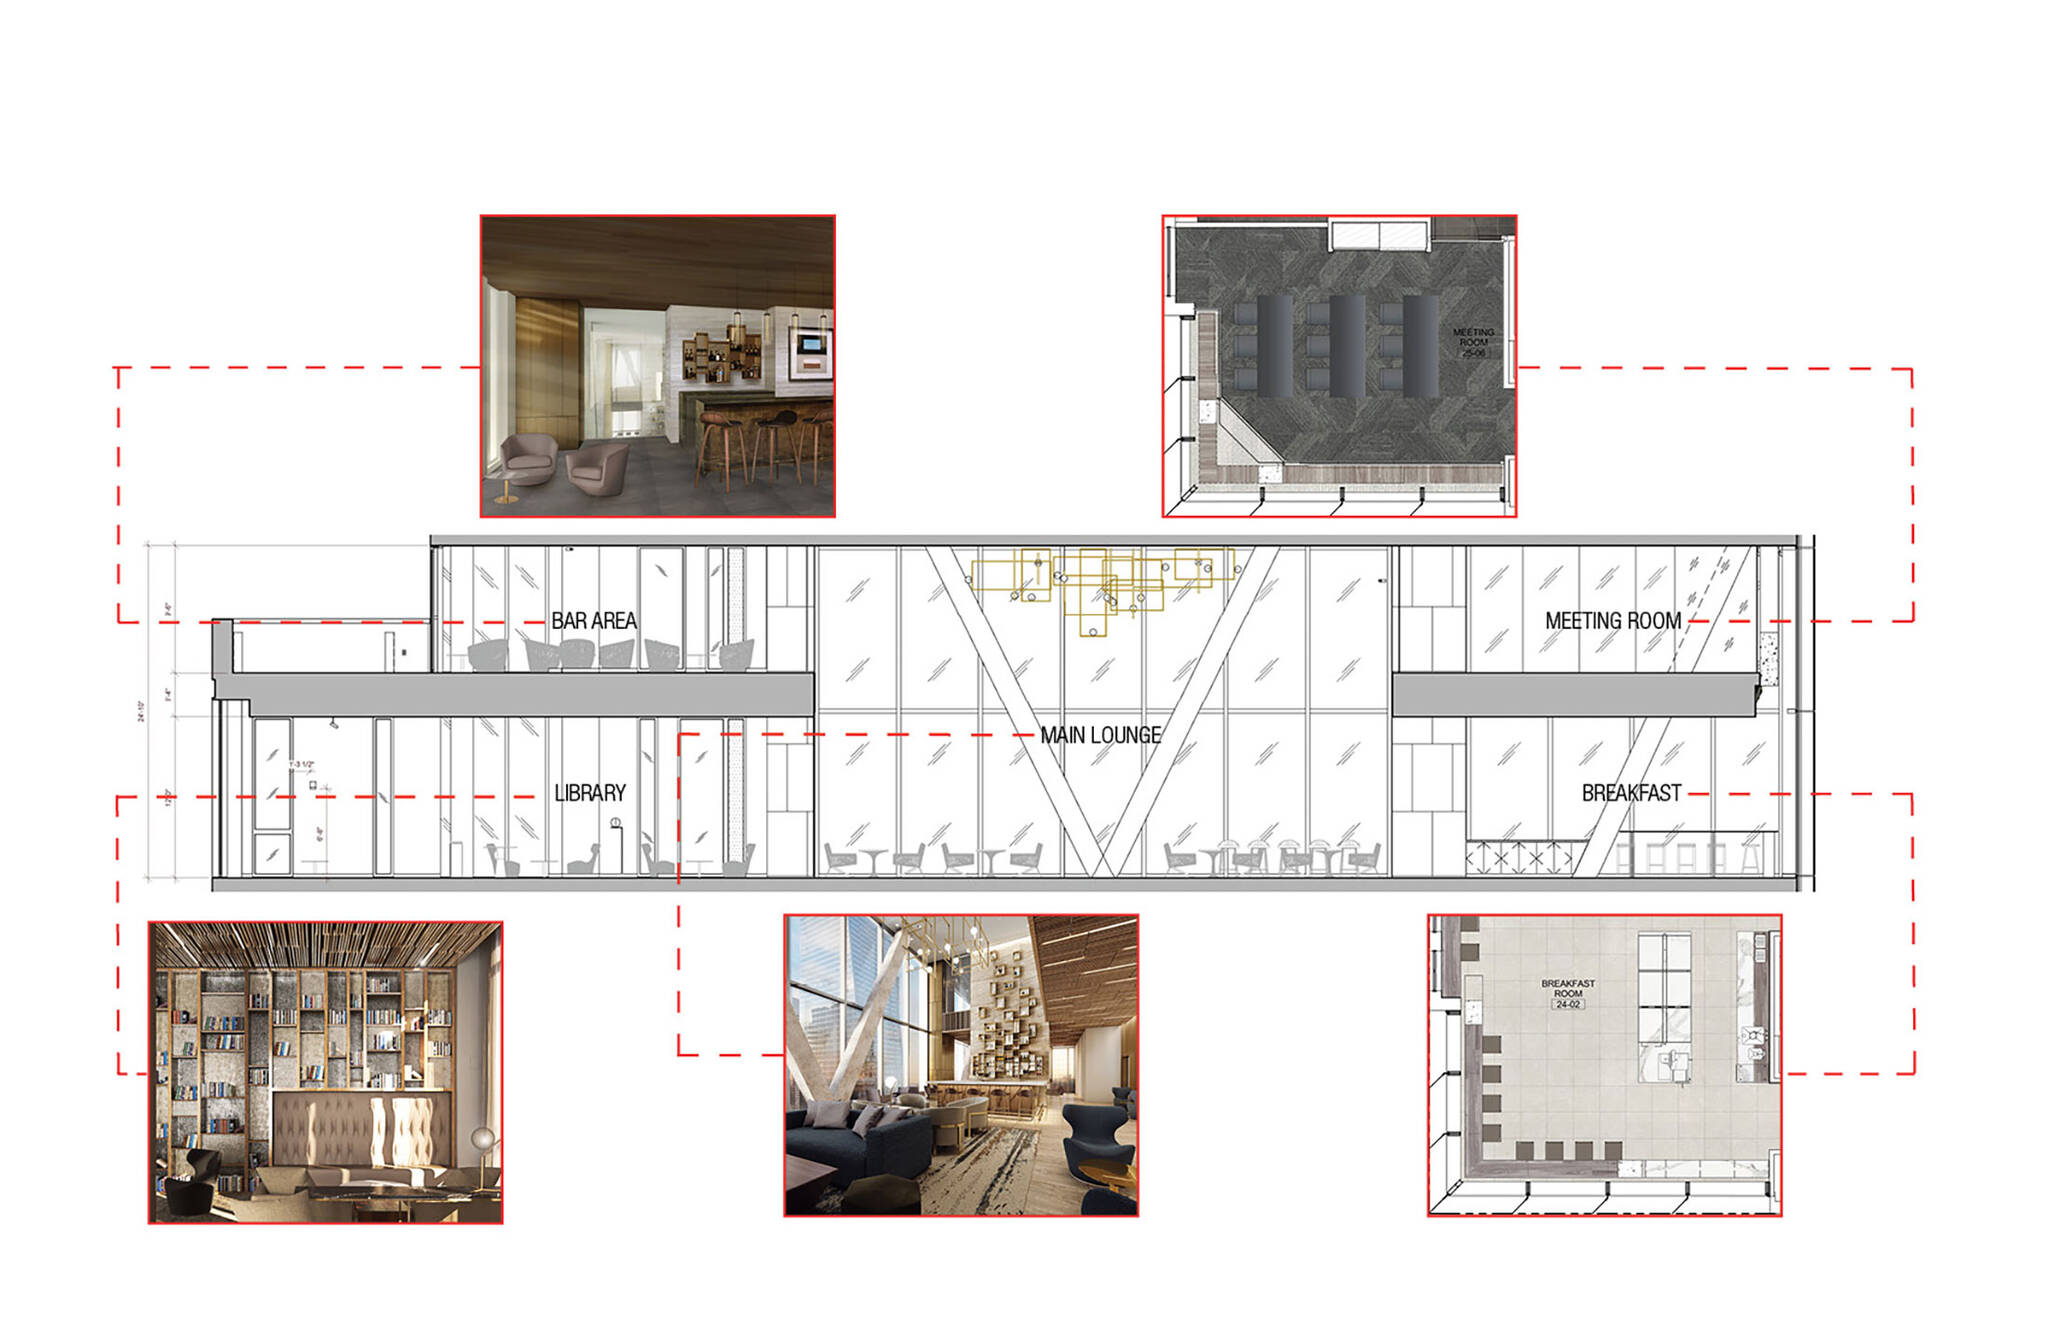 Amenities section diagram of the Hudson Yards Autograph Hotel project by Marriott, a modular hotel tower located at 432 West 31st Street in Hudson Yards, New York City designed by the architecture studio Danny Forster & Architecture